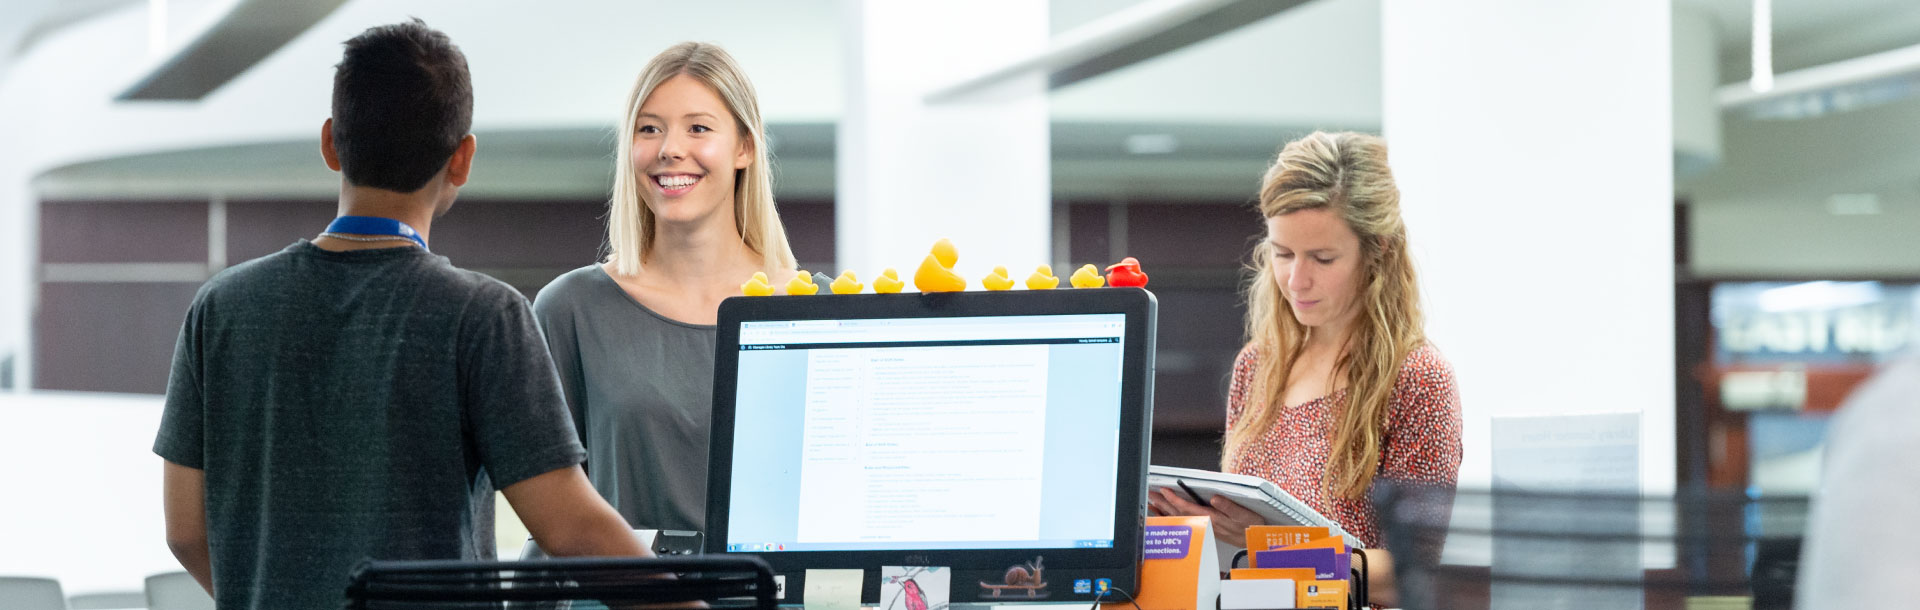 Students being helped at the Library Service Desk